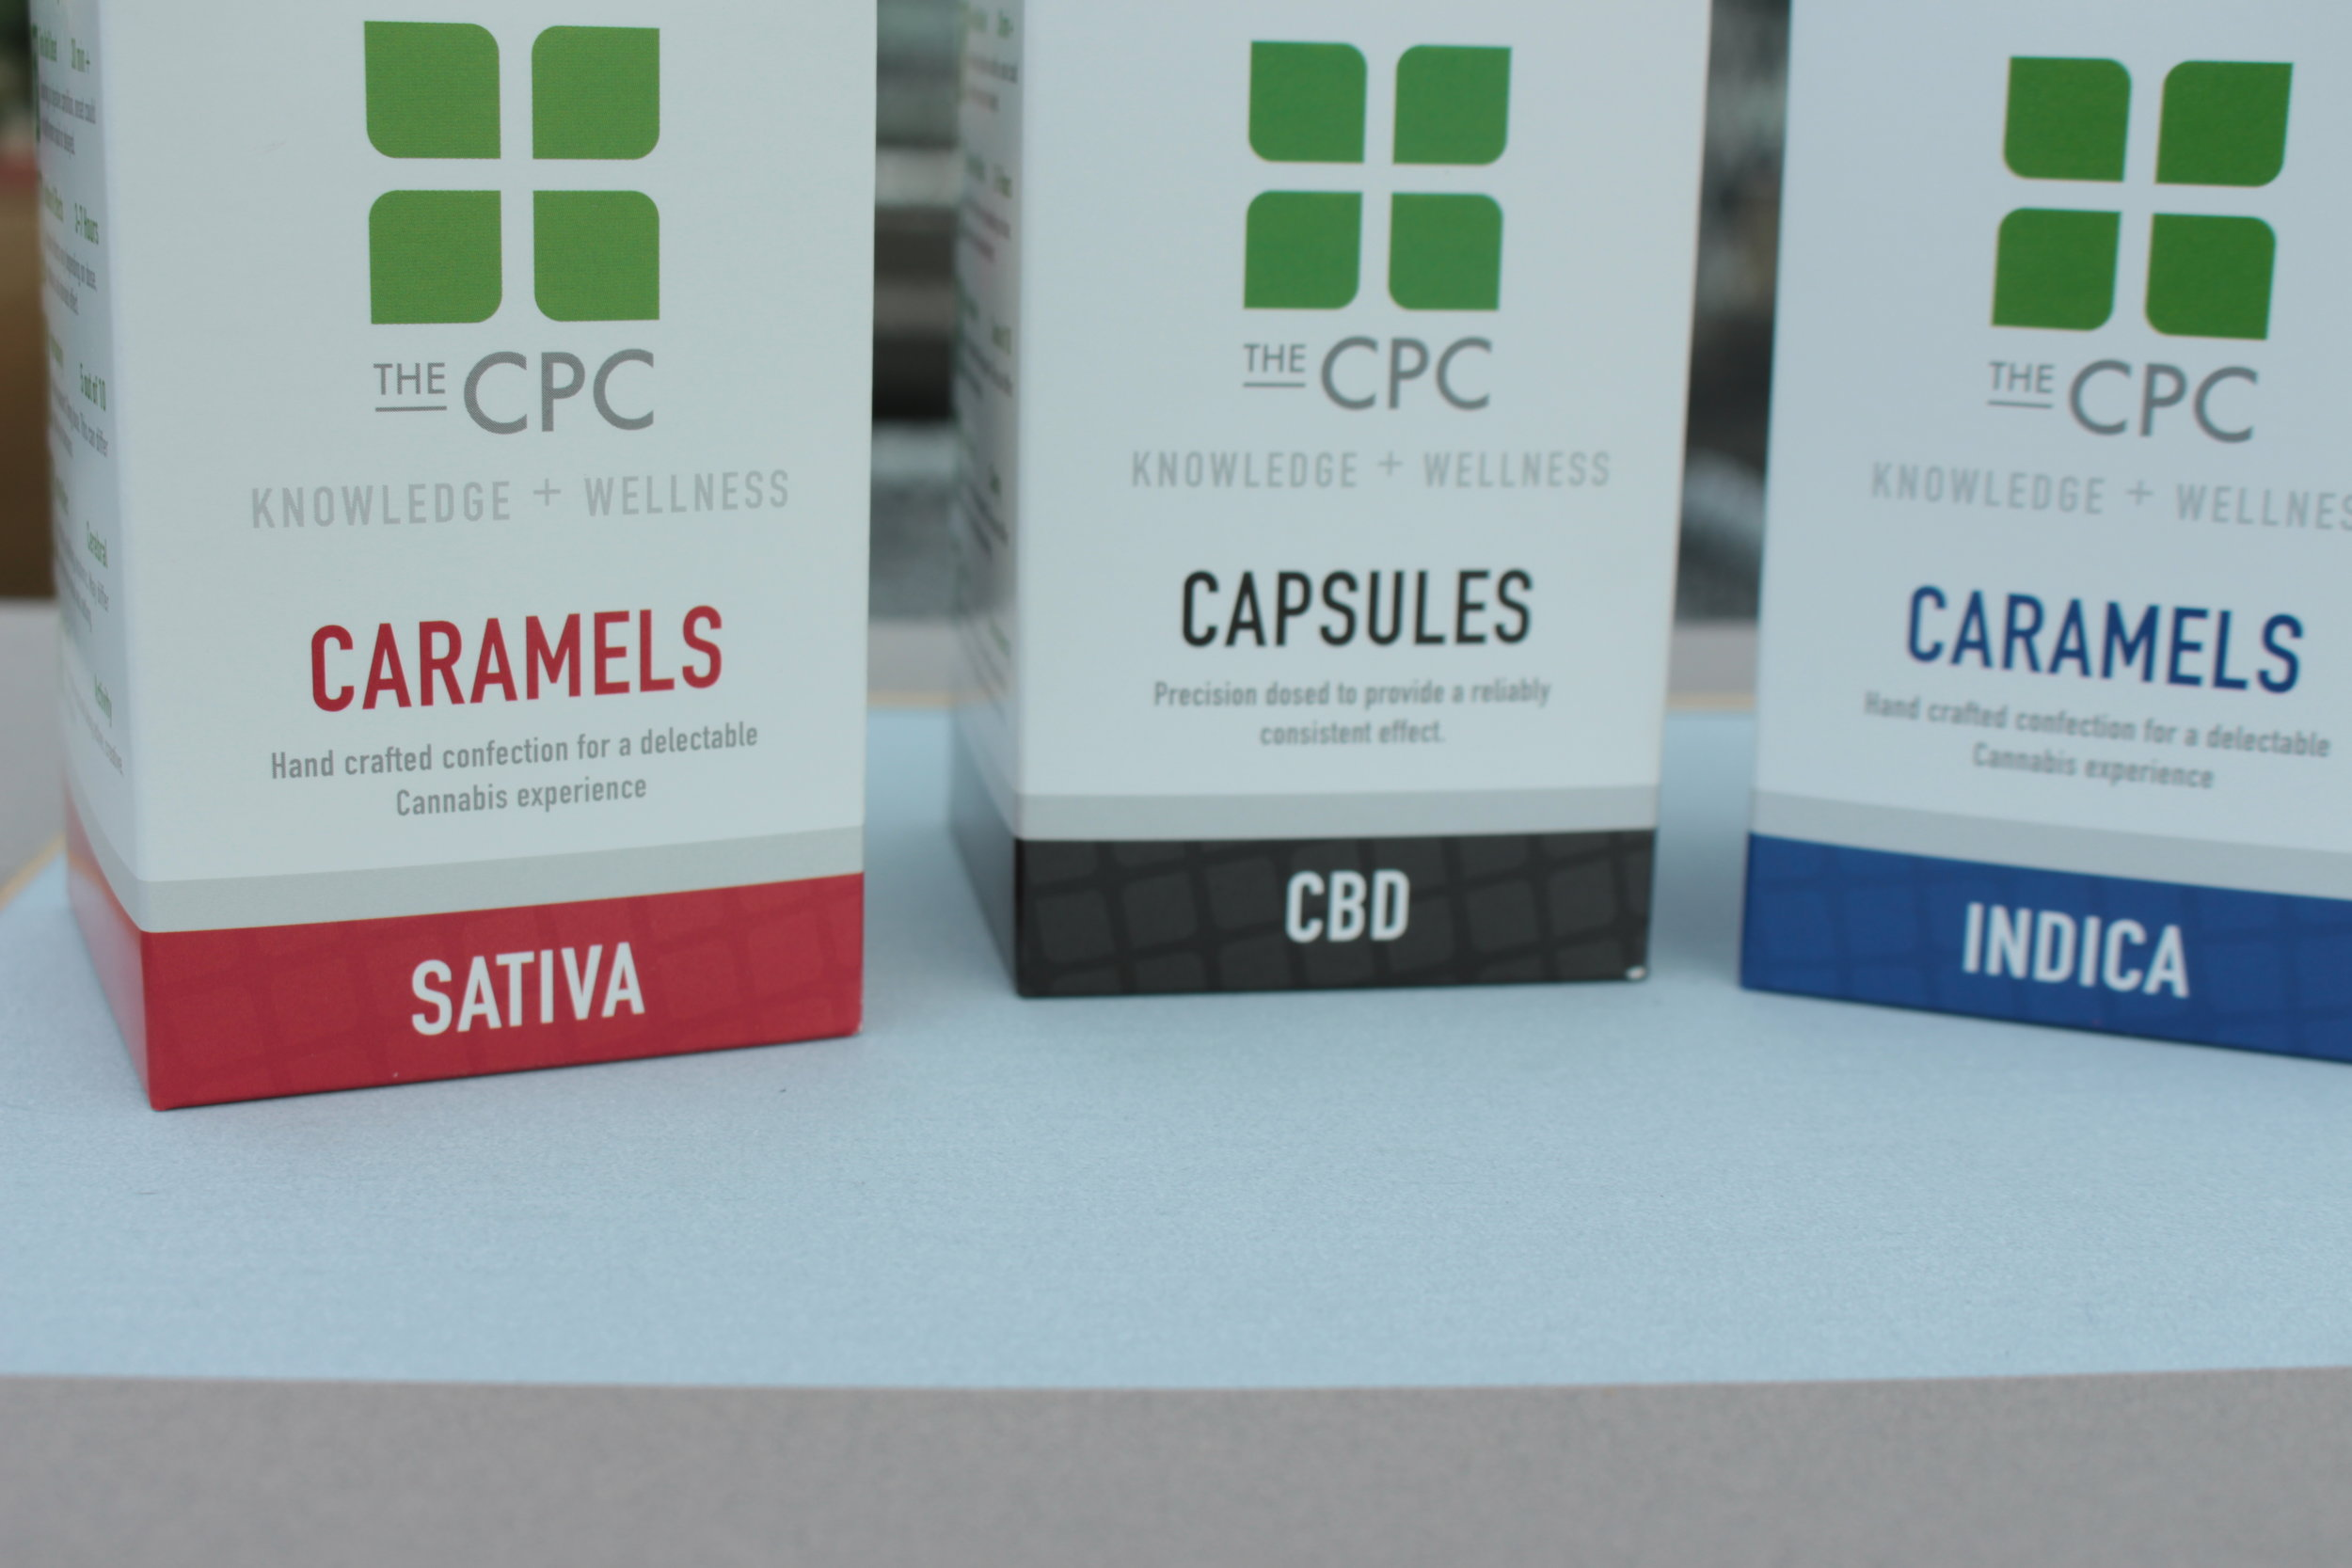 CBD capsules Indica Staiva Caramel CPC i502 retail packaging